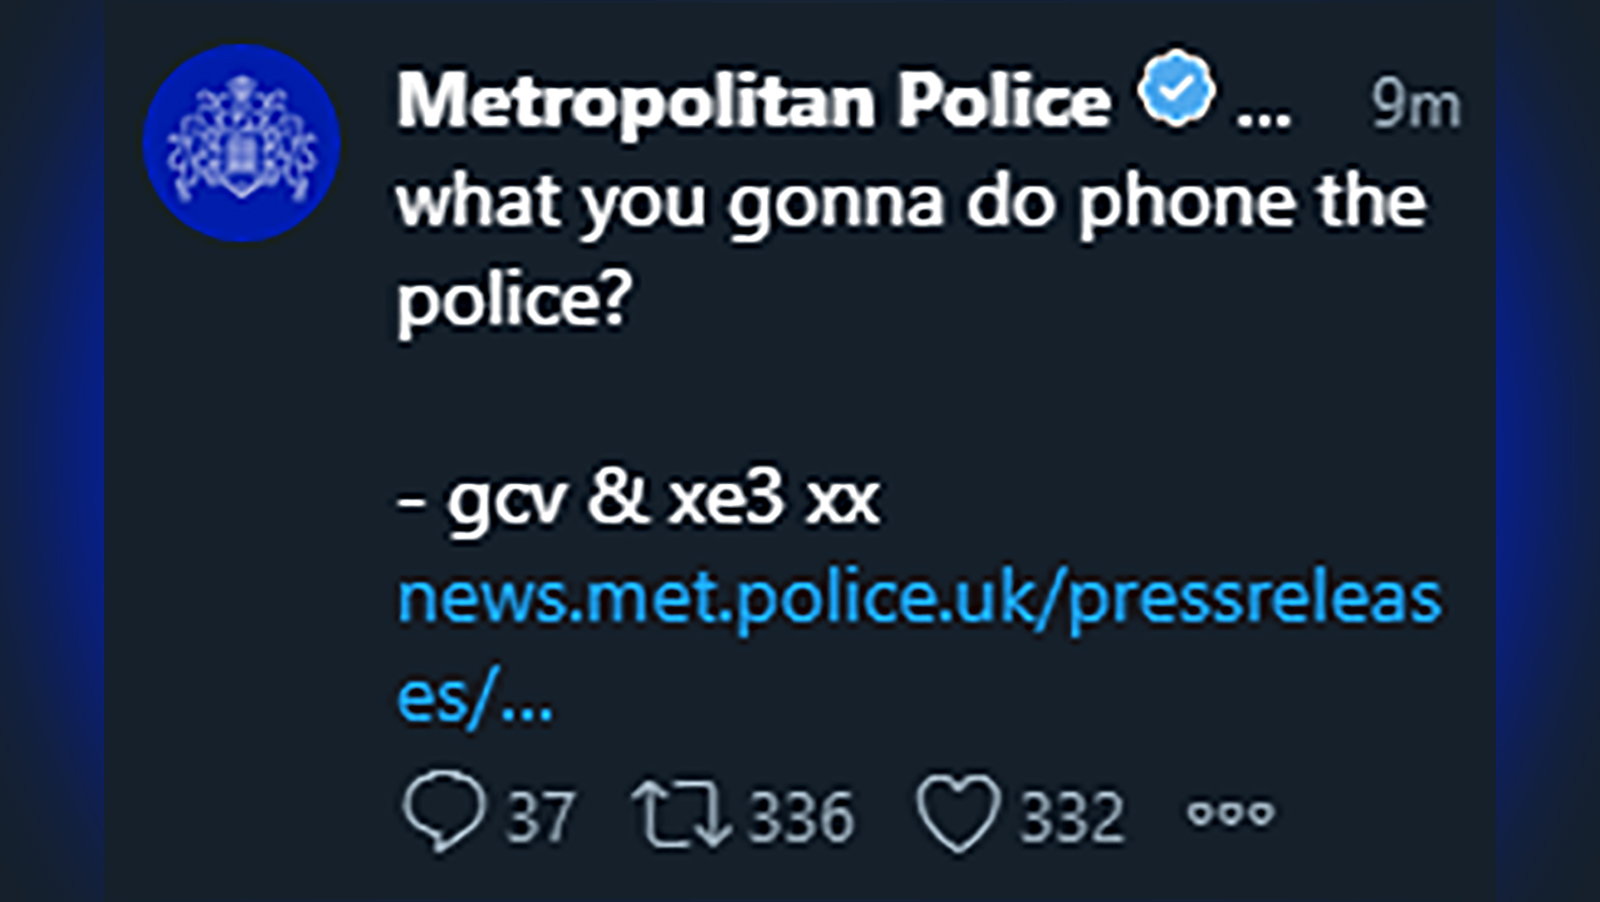 Hackers take over the London Metropolitan Police's Twitter account ...